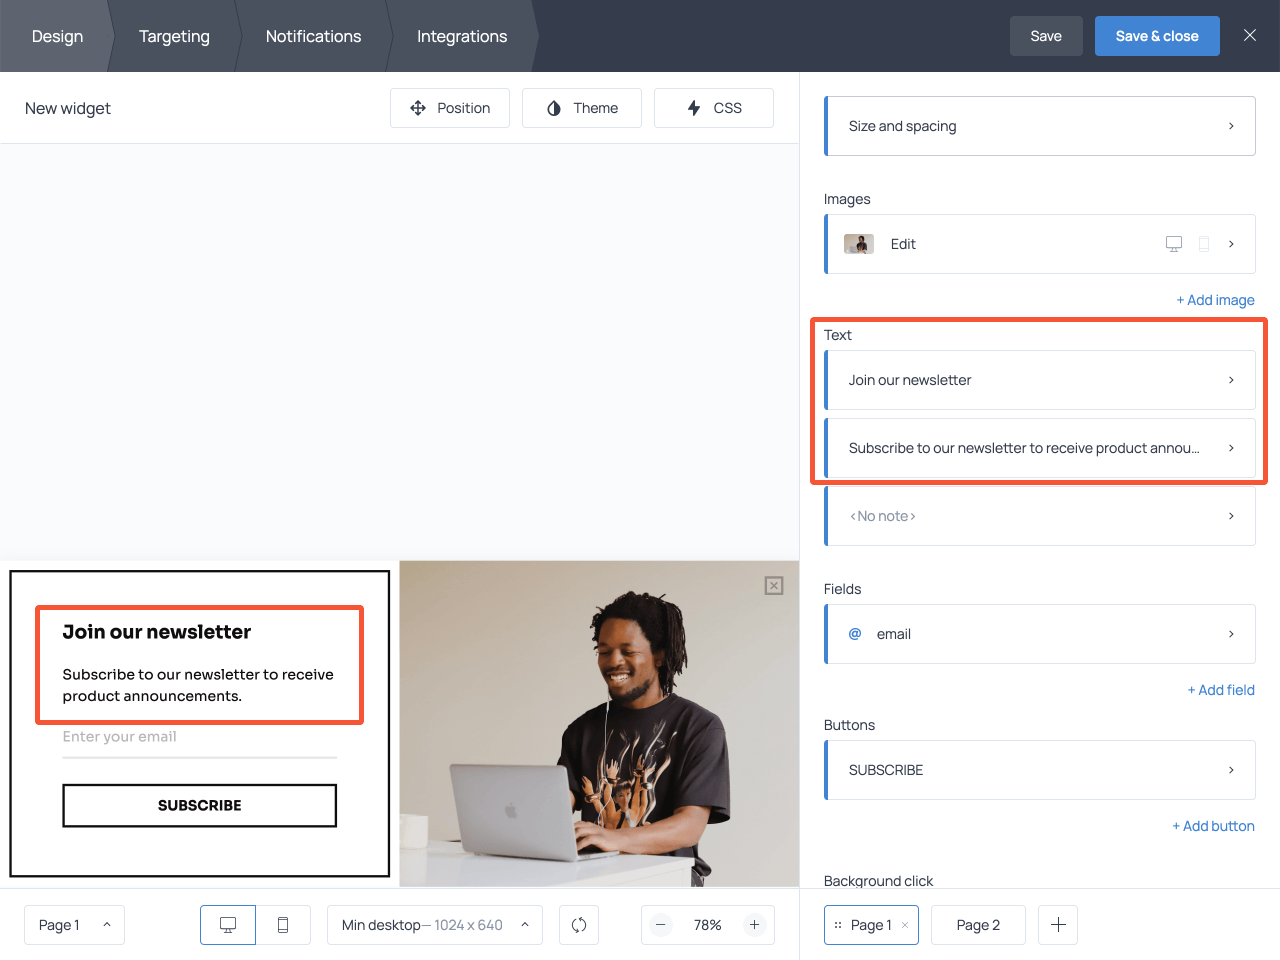 How to edit the copy on the email signup form in Getsitecontrol